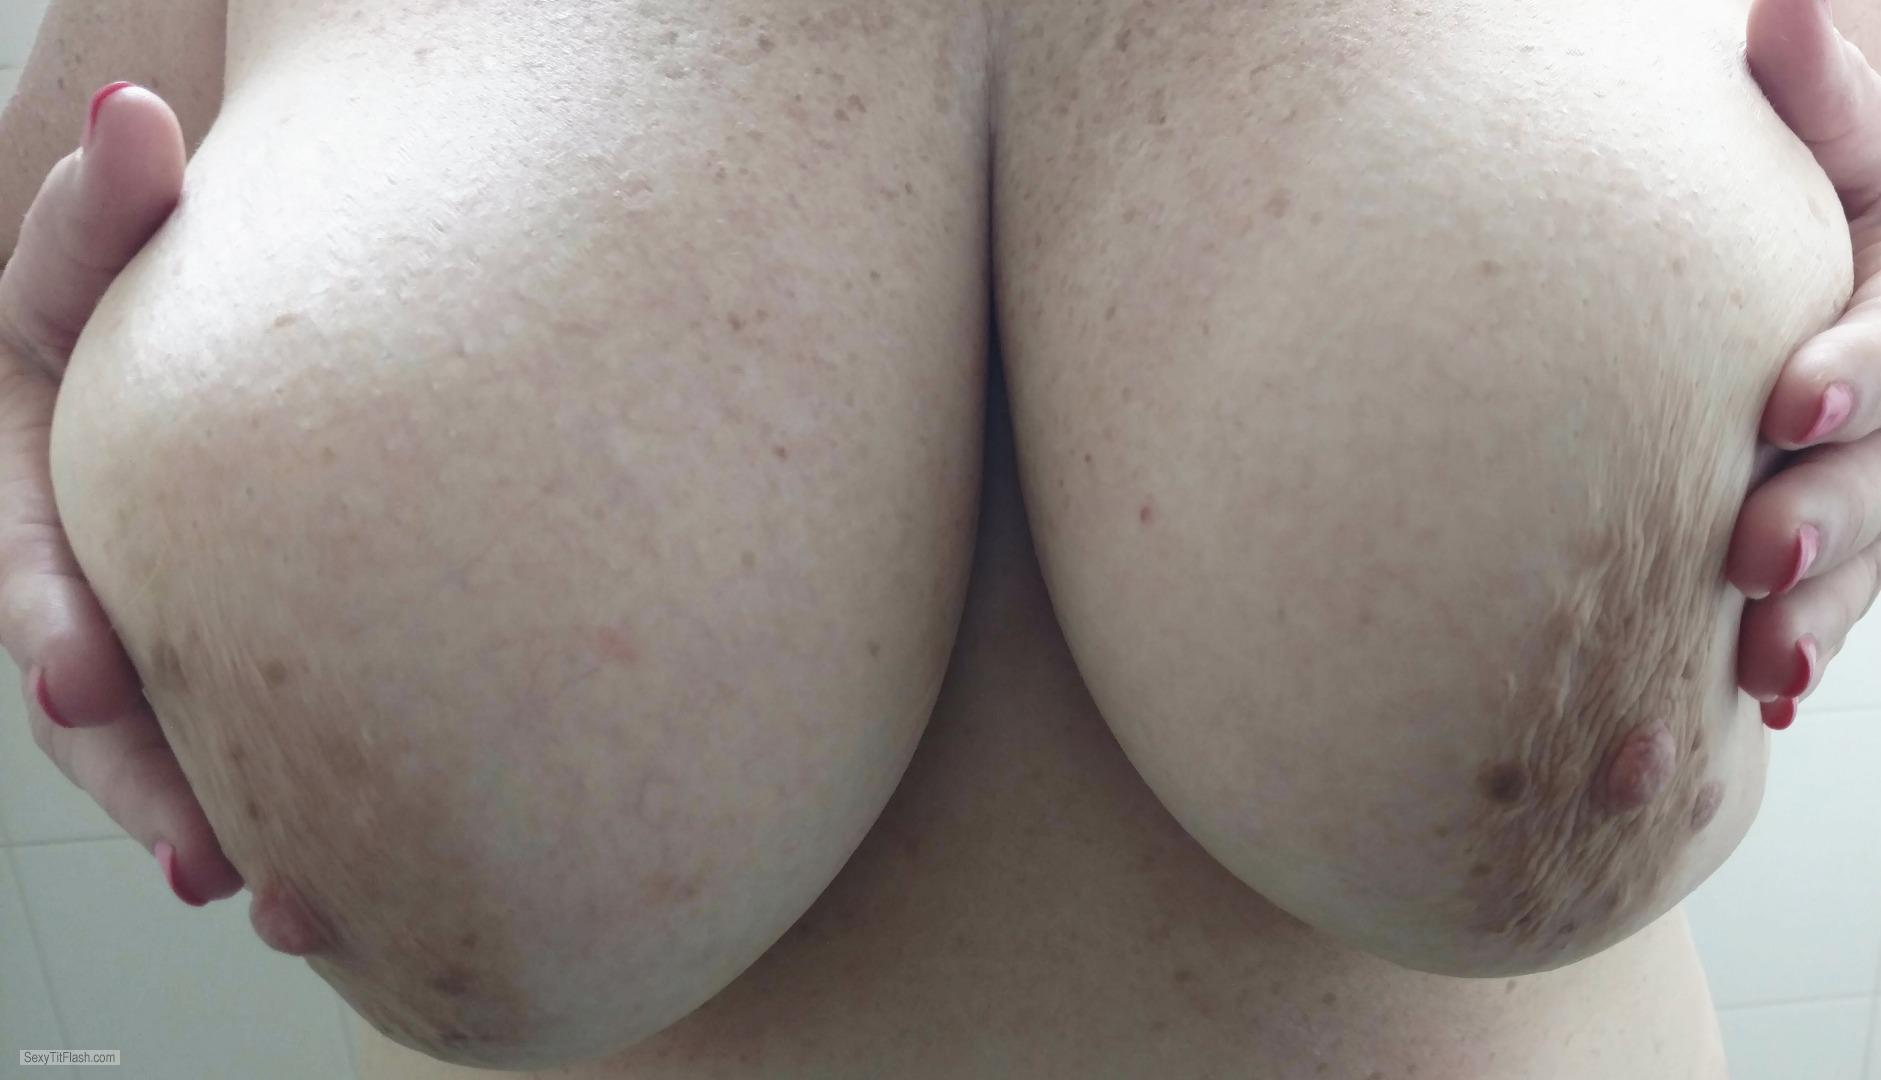 Tit Flash: My Very Big Tits - Baby-G from United States